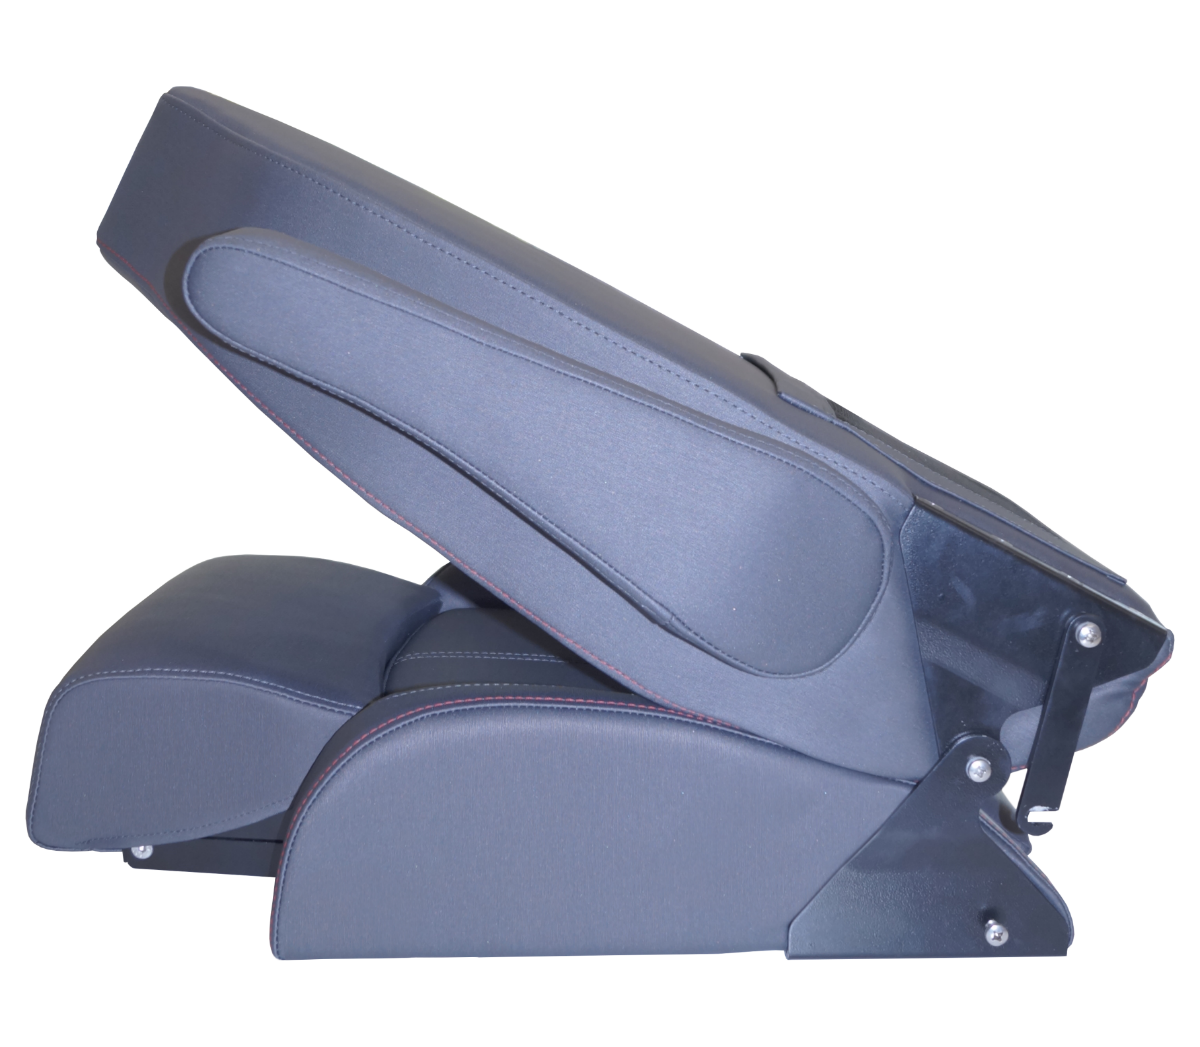 Tremendous Boat Seats Cushions Pilot Seats Canopies And Stainless Dailytribune Chair Design For Home Dailytribuneorg